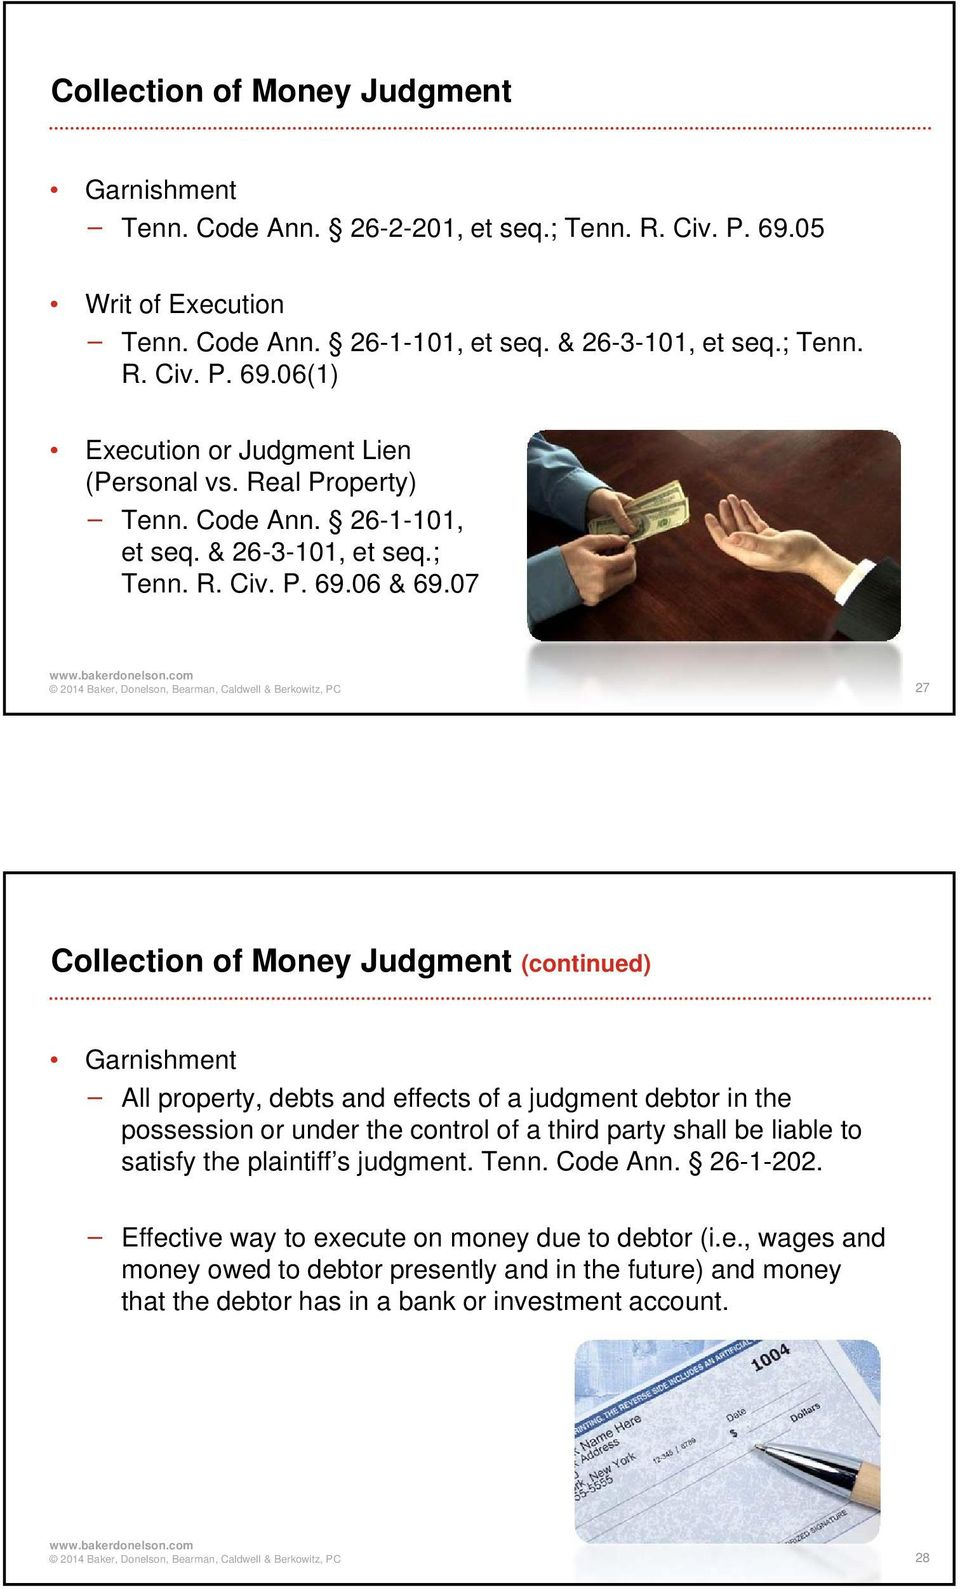 07 27 Collection of Money Judgment (continued) Garnishment All property, debts and effects of a judgment debtor in the possession or under the control of a third party shall be liable to